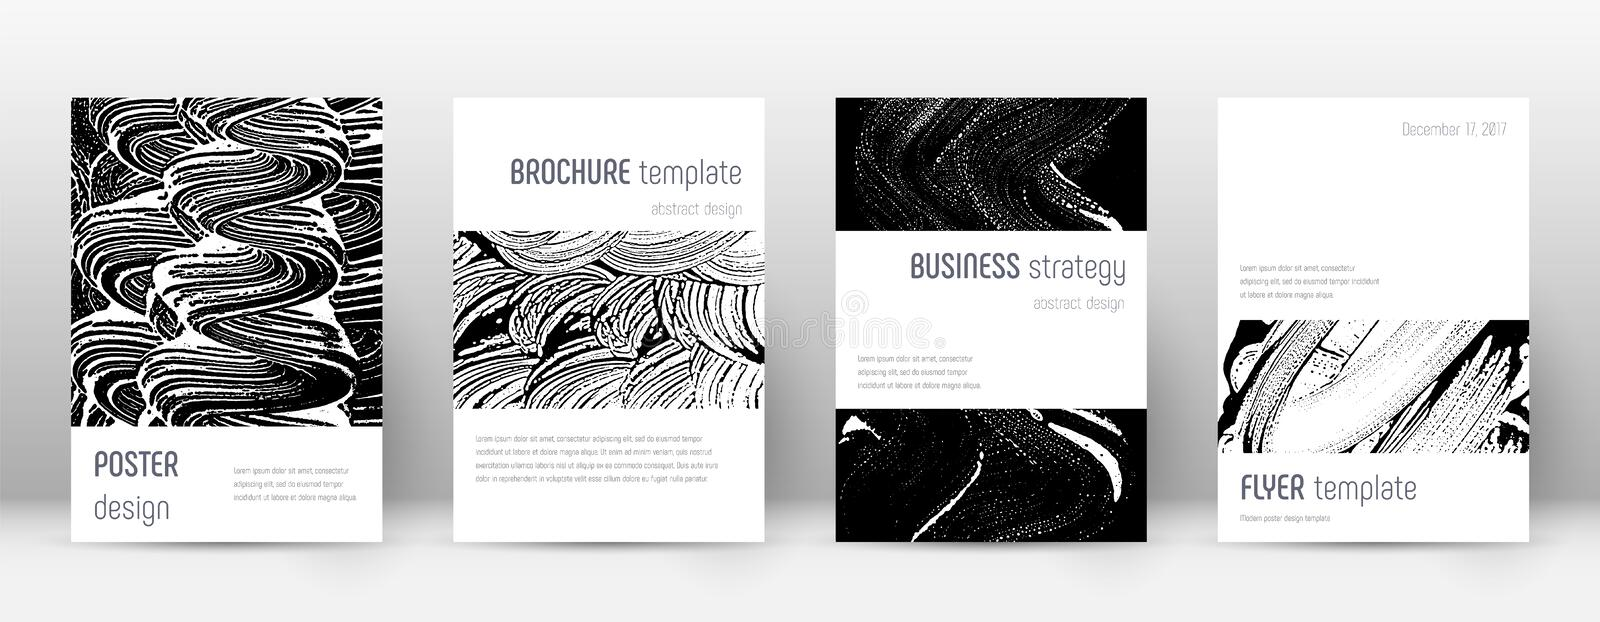 Cover page design template. Minimalistic brochure. Layout. Classic trendy abstract cover page. Black and white grunge texture background. Energetic poster vector illustration